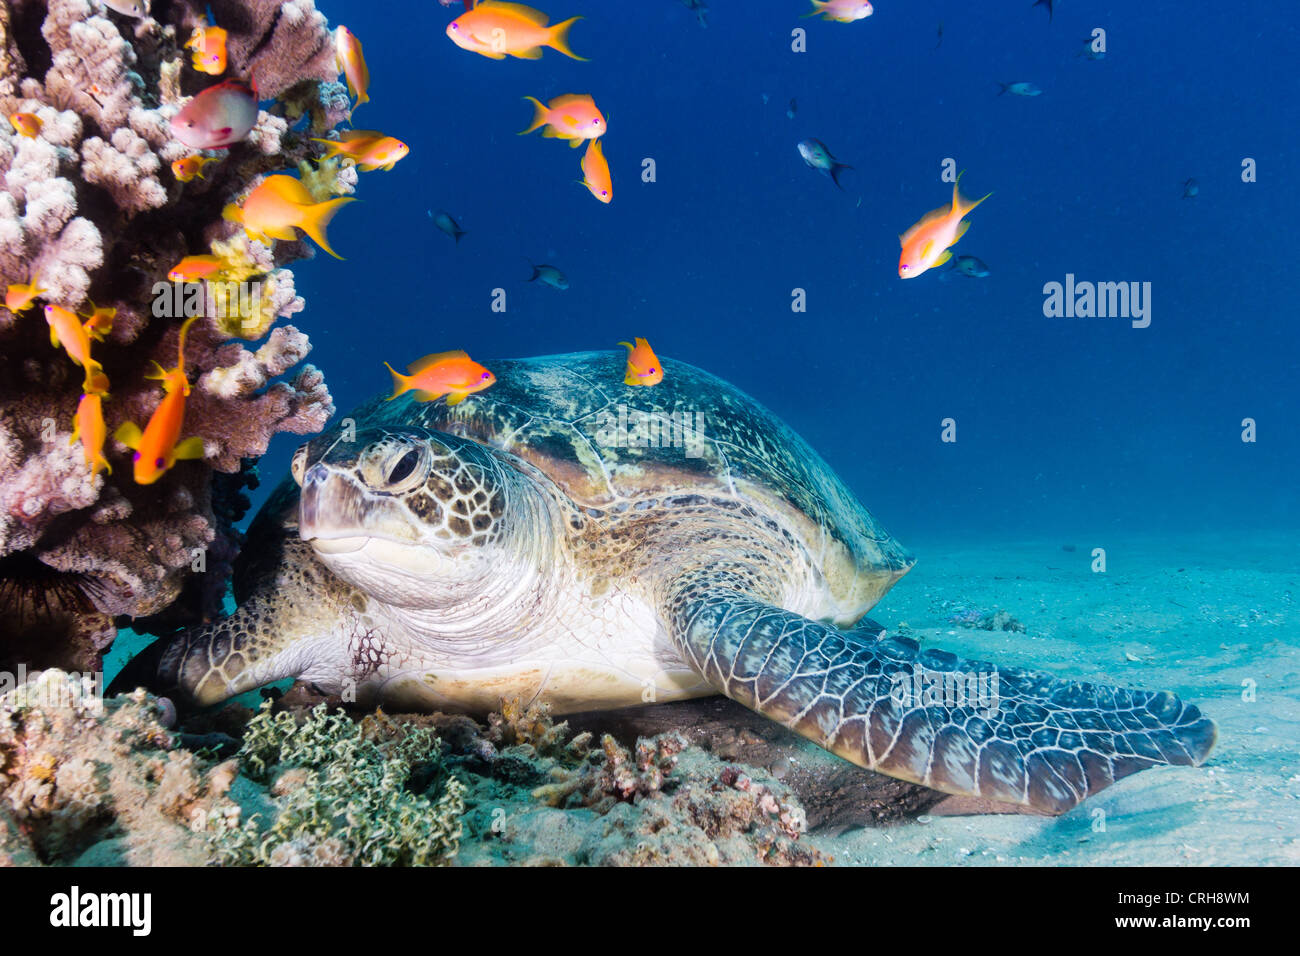 A large green turtle rests on the bottom next to an anthia covered coral pinnacle in the Egyptian Red Sea (Gulf - Stock Image